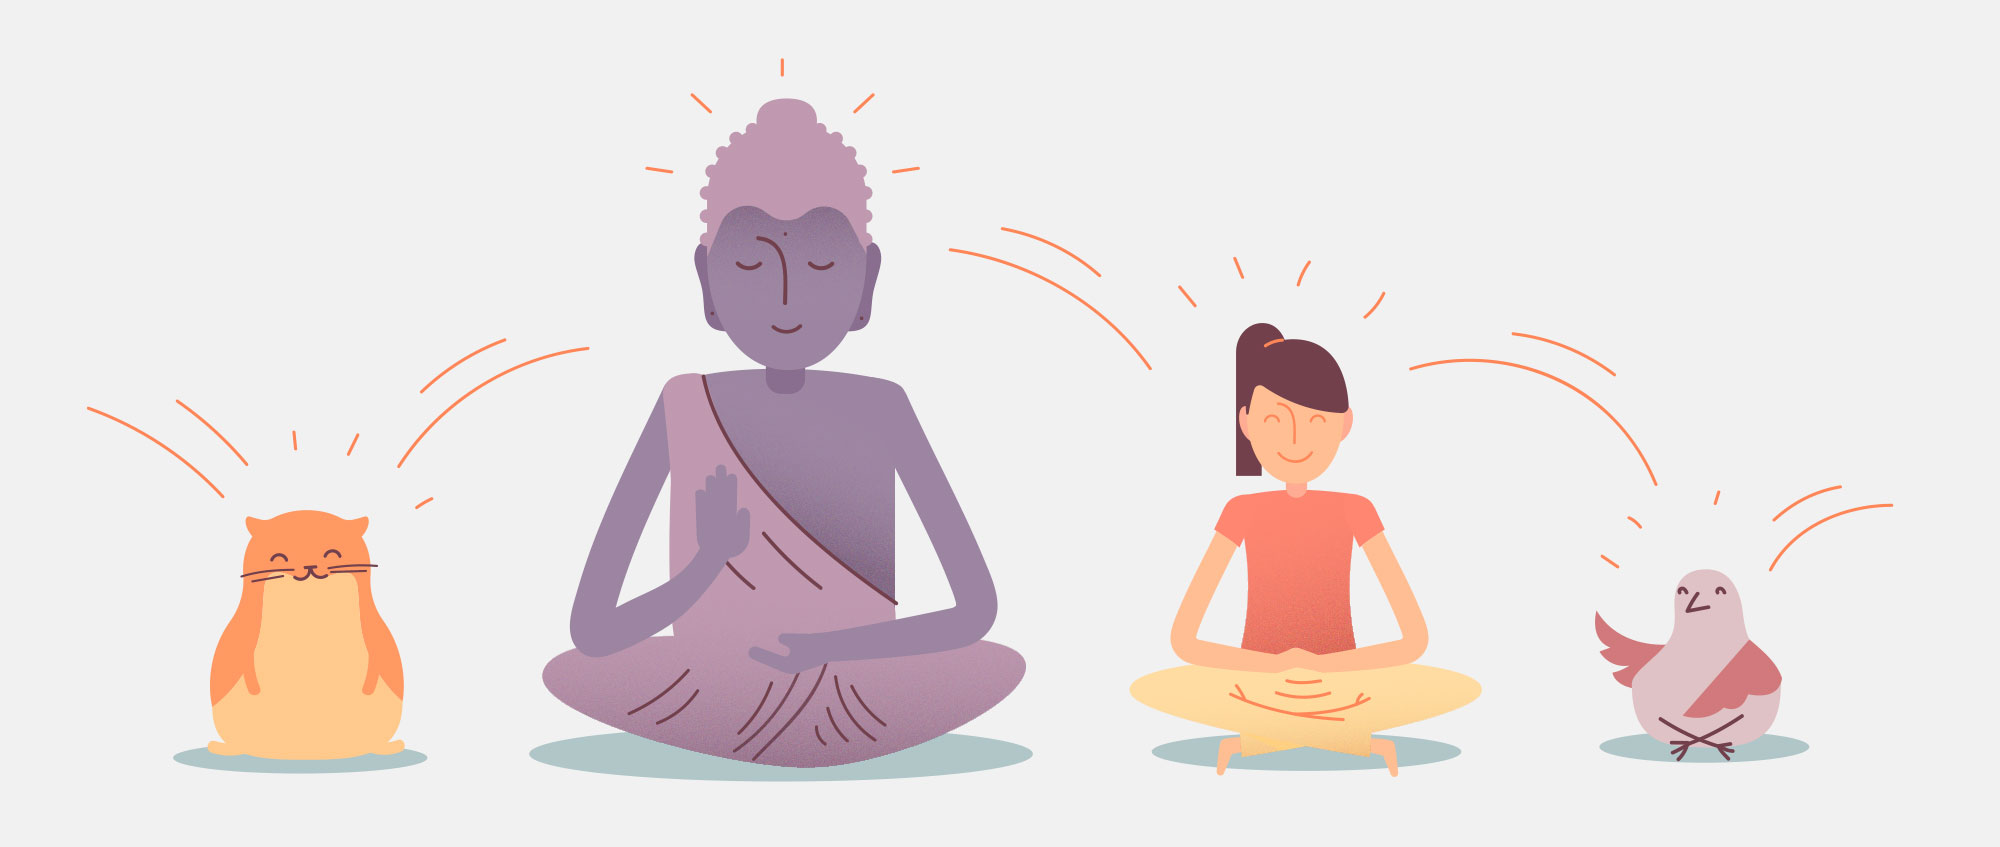 7 Benefits of Meditation for Your Mind, Body and Spirit